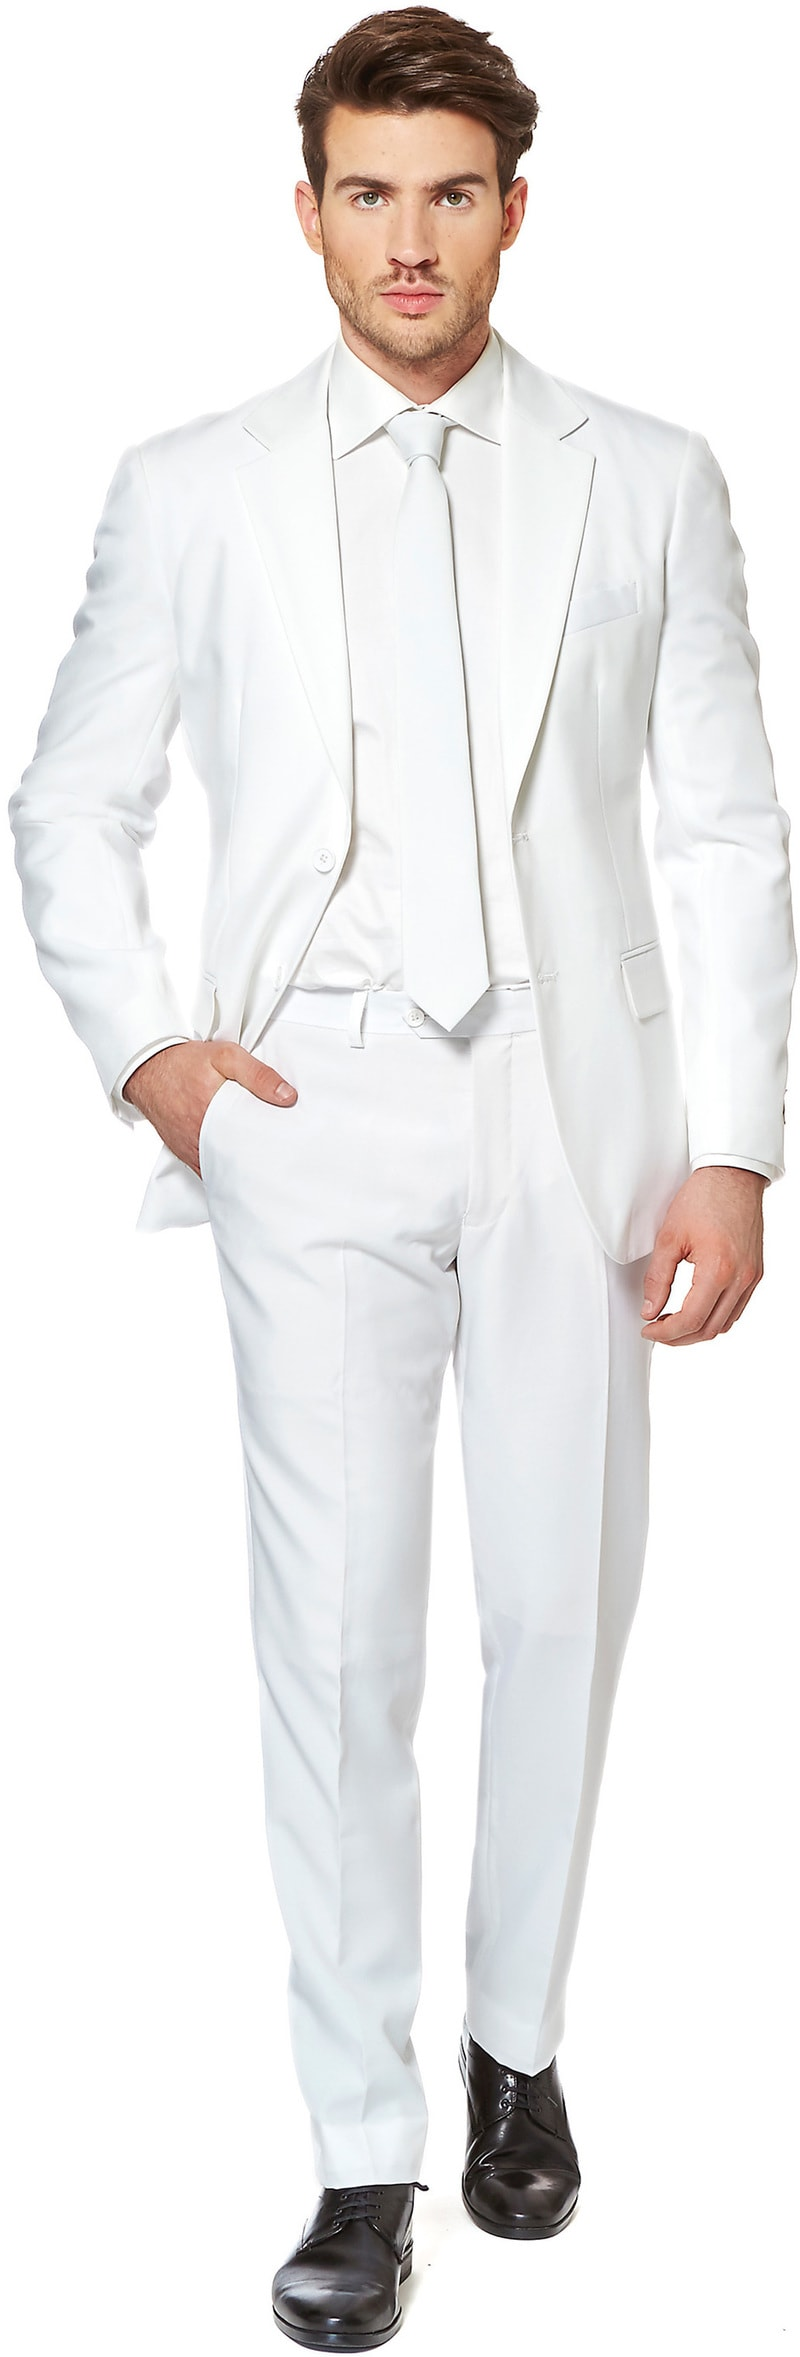 OppoSuits White Knight Suit photo 0